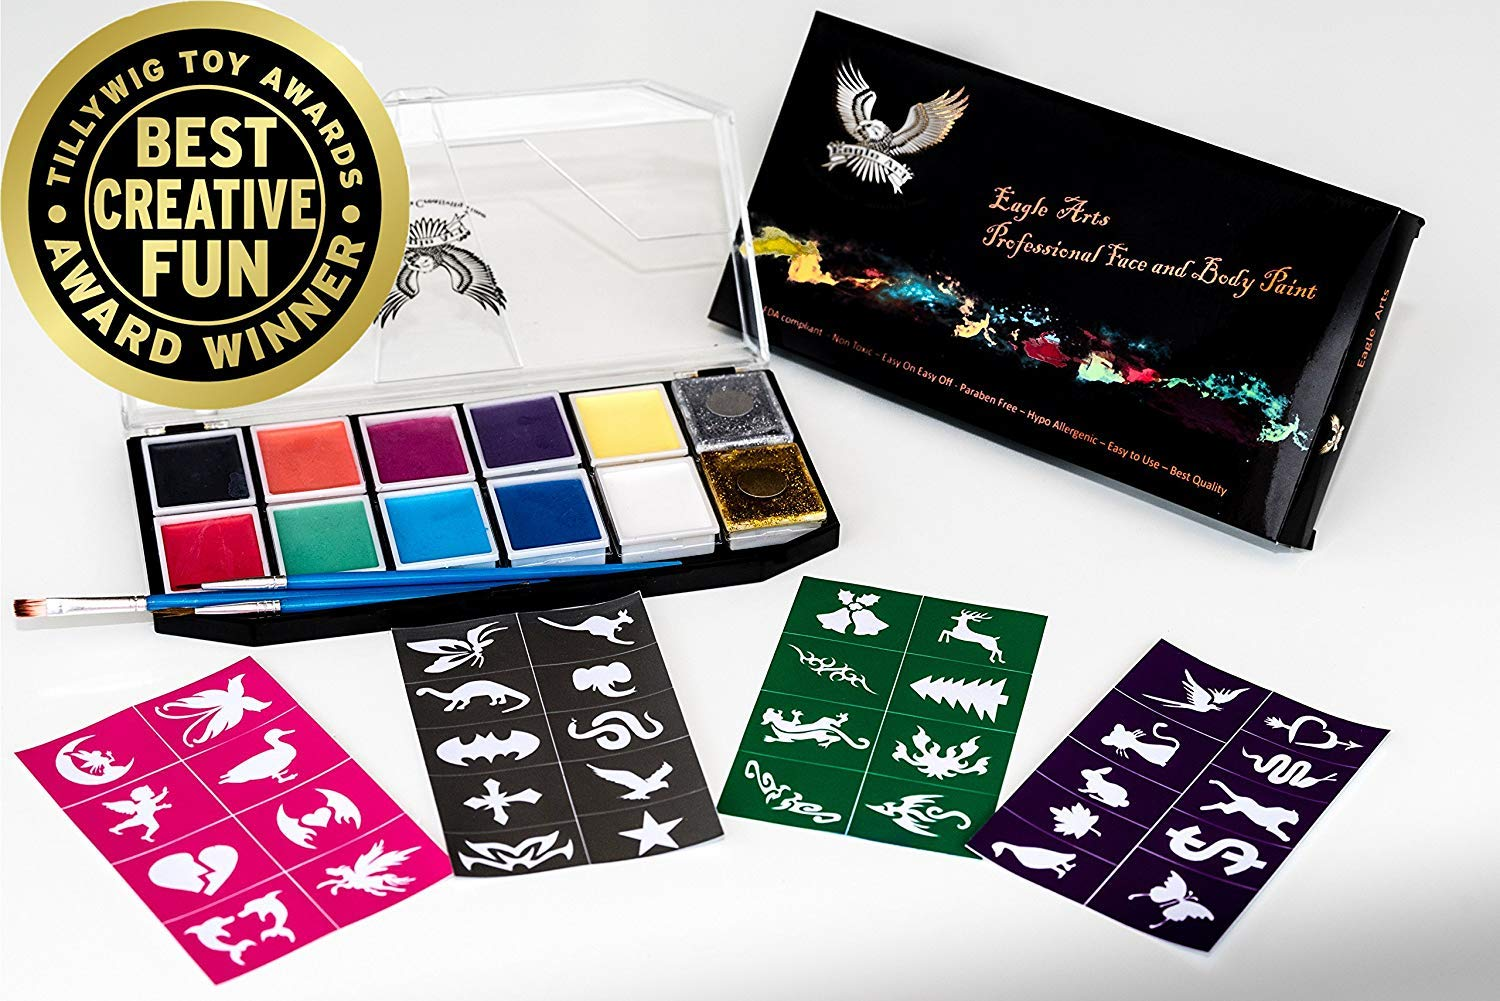 Award Winning Face & Body Paint Professional Palette by Eagle Art   Water Based Paint   Non-Toxic Hypoallergenic   FDA Approved Completely Safe Cosmetic Grade Face painting Kit   Ideal for Kids, Adult